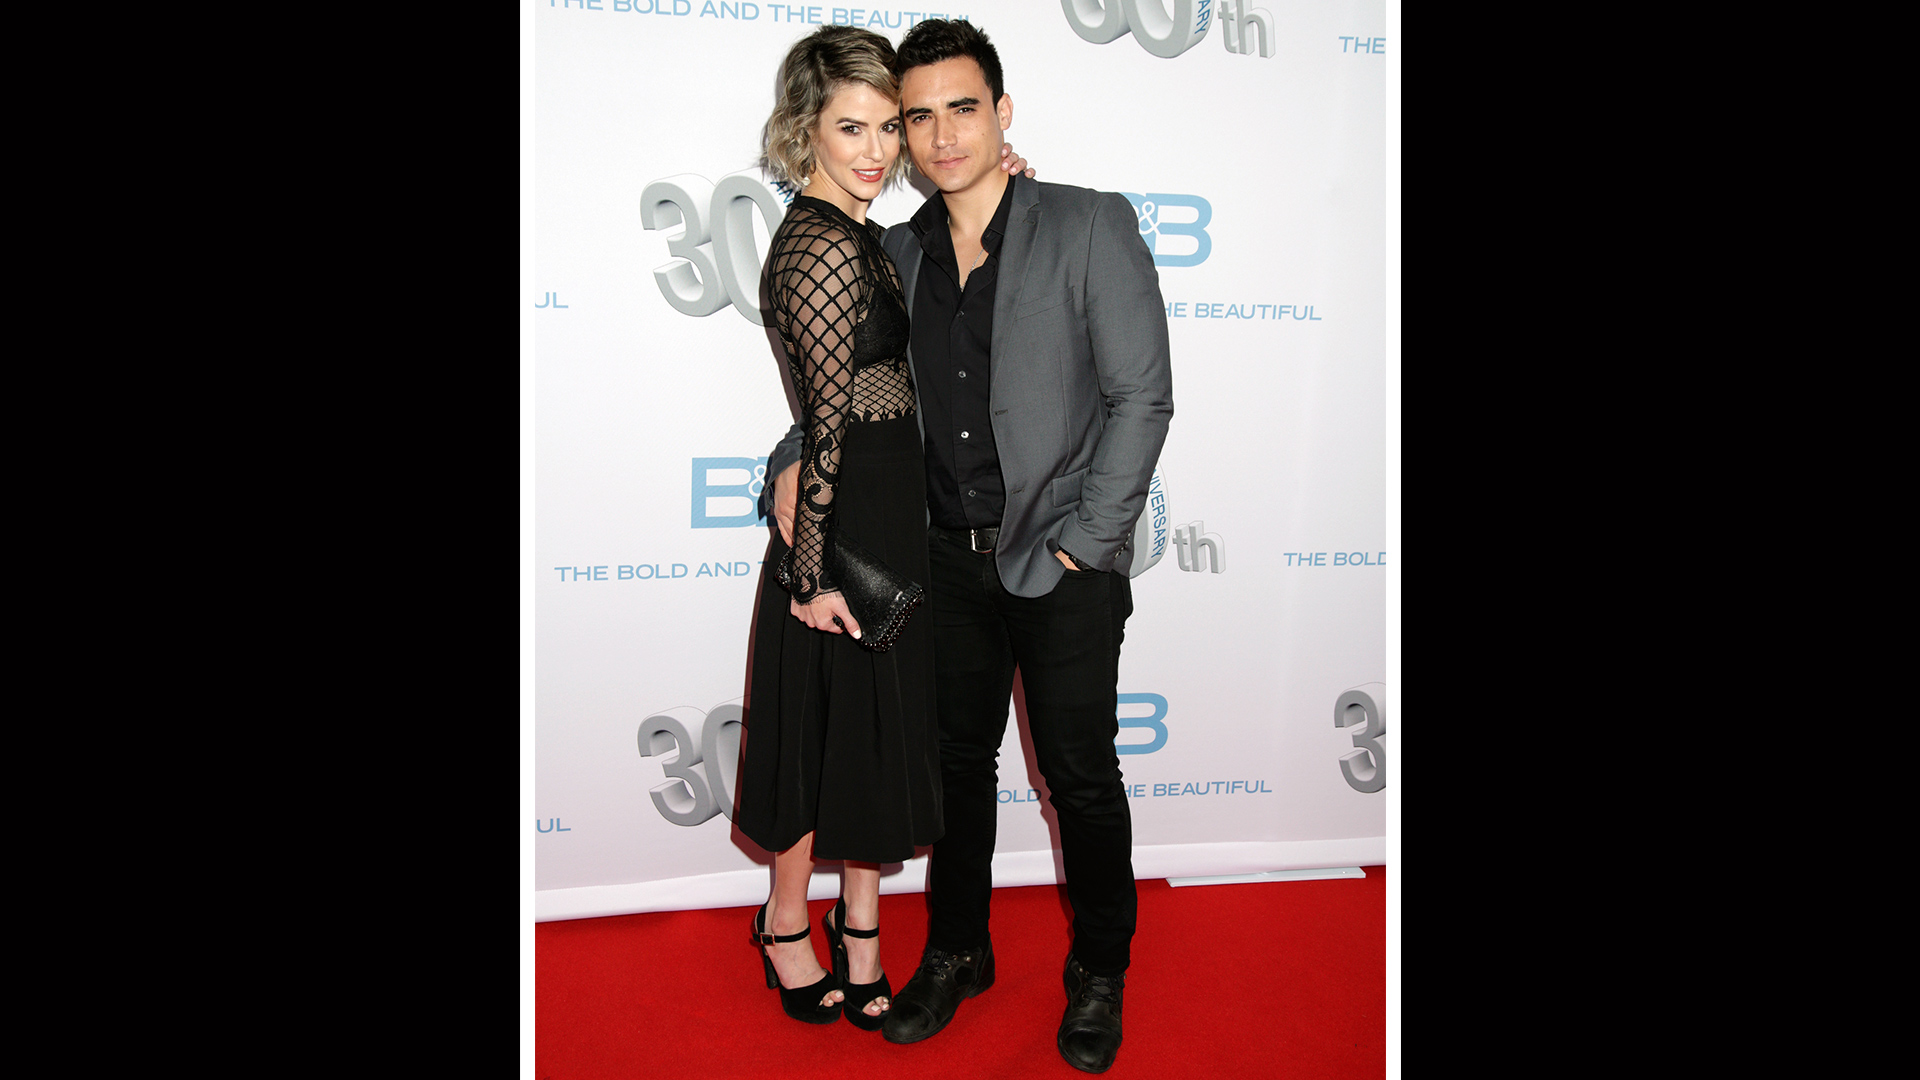 Linsey Godfrey shows some skin and poses with her date, Marco James Marquez.